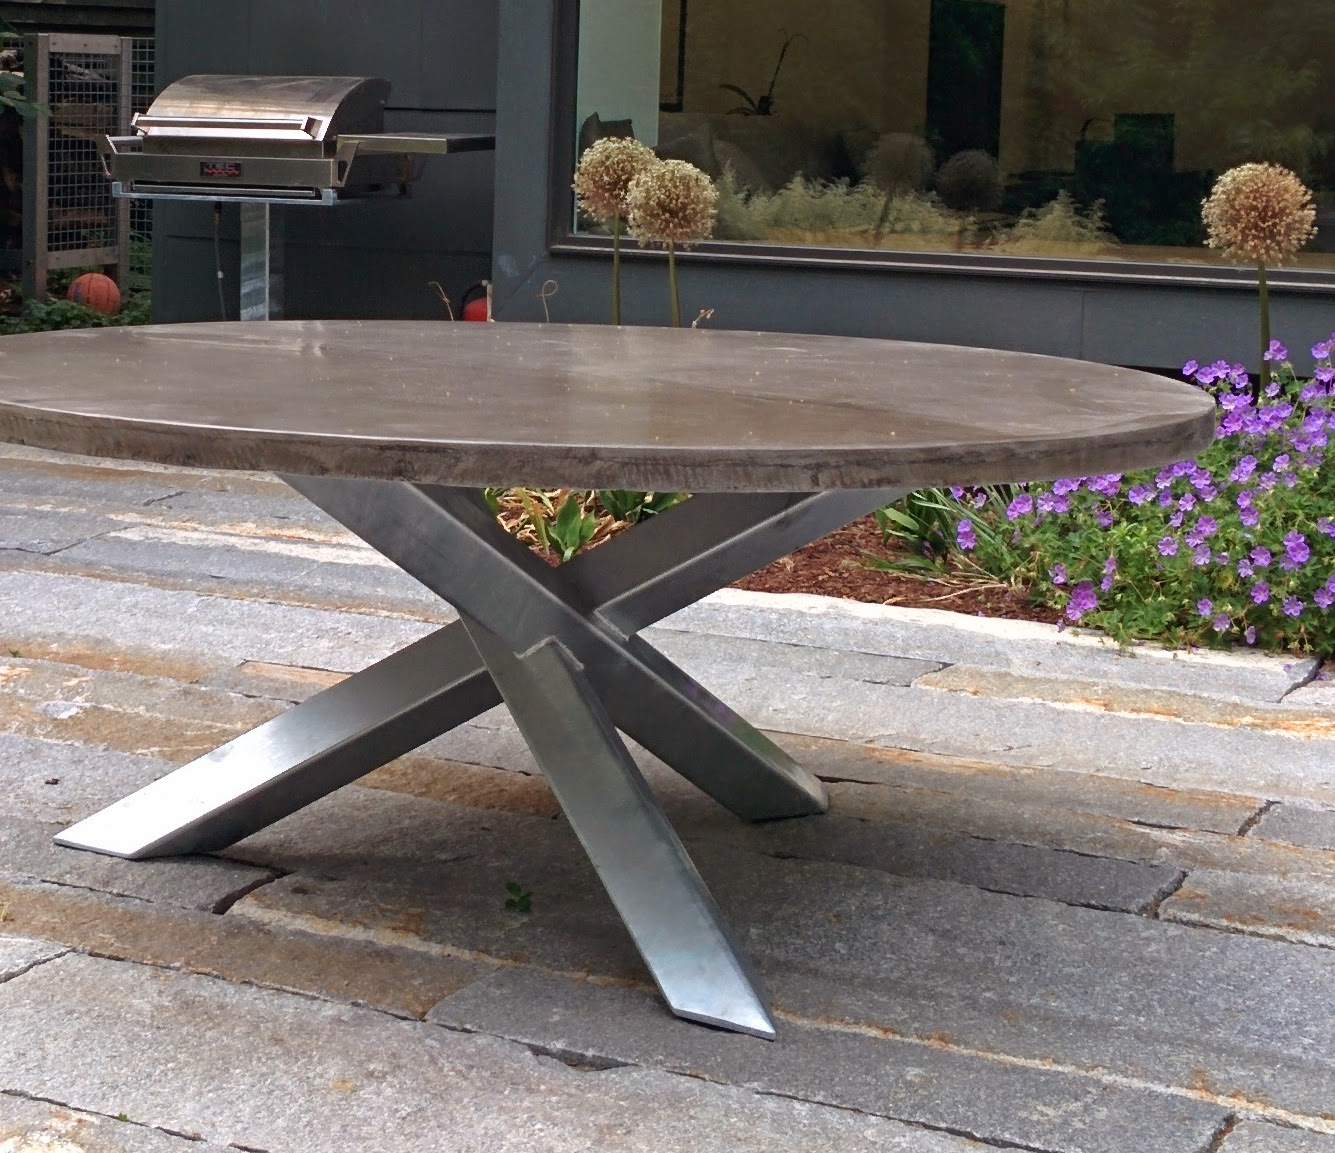 Custom Galvanized Steel Bases, Cambridge MA. Concrete Supplied By Client.